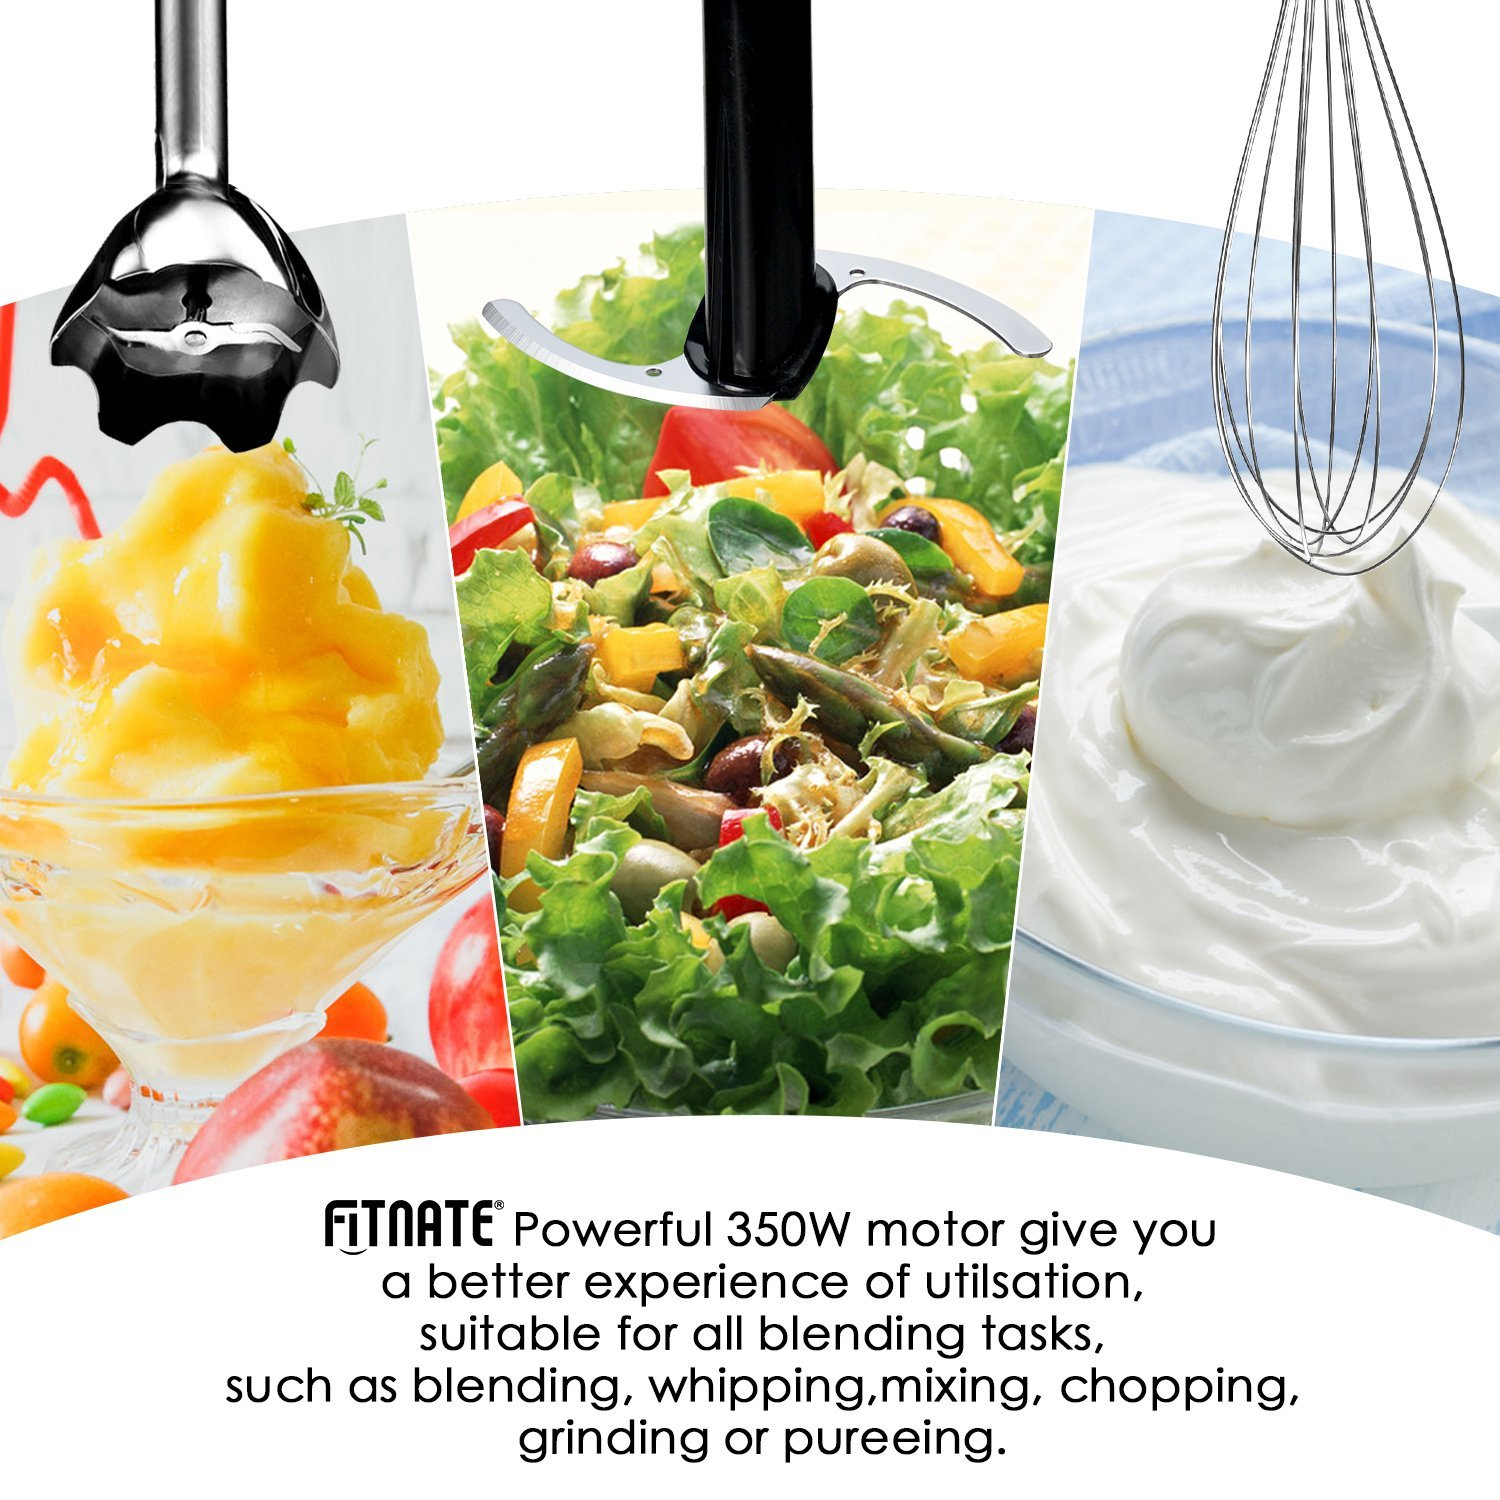 Fitnate 4 in 1 Immersion Hand Blender Stick Mixer 5 Speed Smart Blender Set with Chopper & Whisk & Beaker Set, Super Strong Motor, 350W